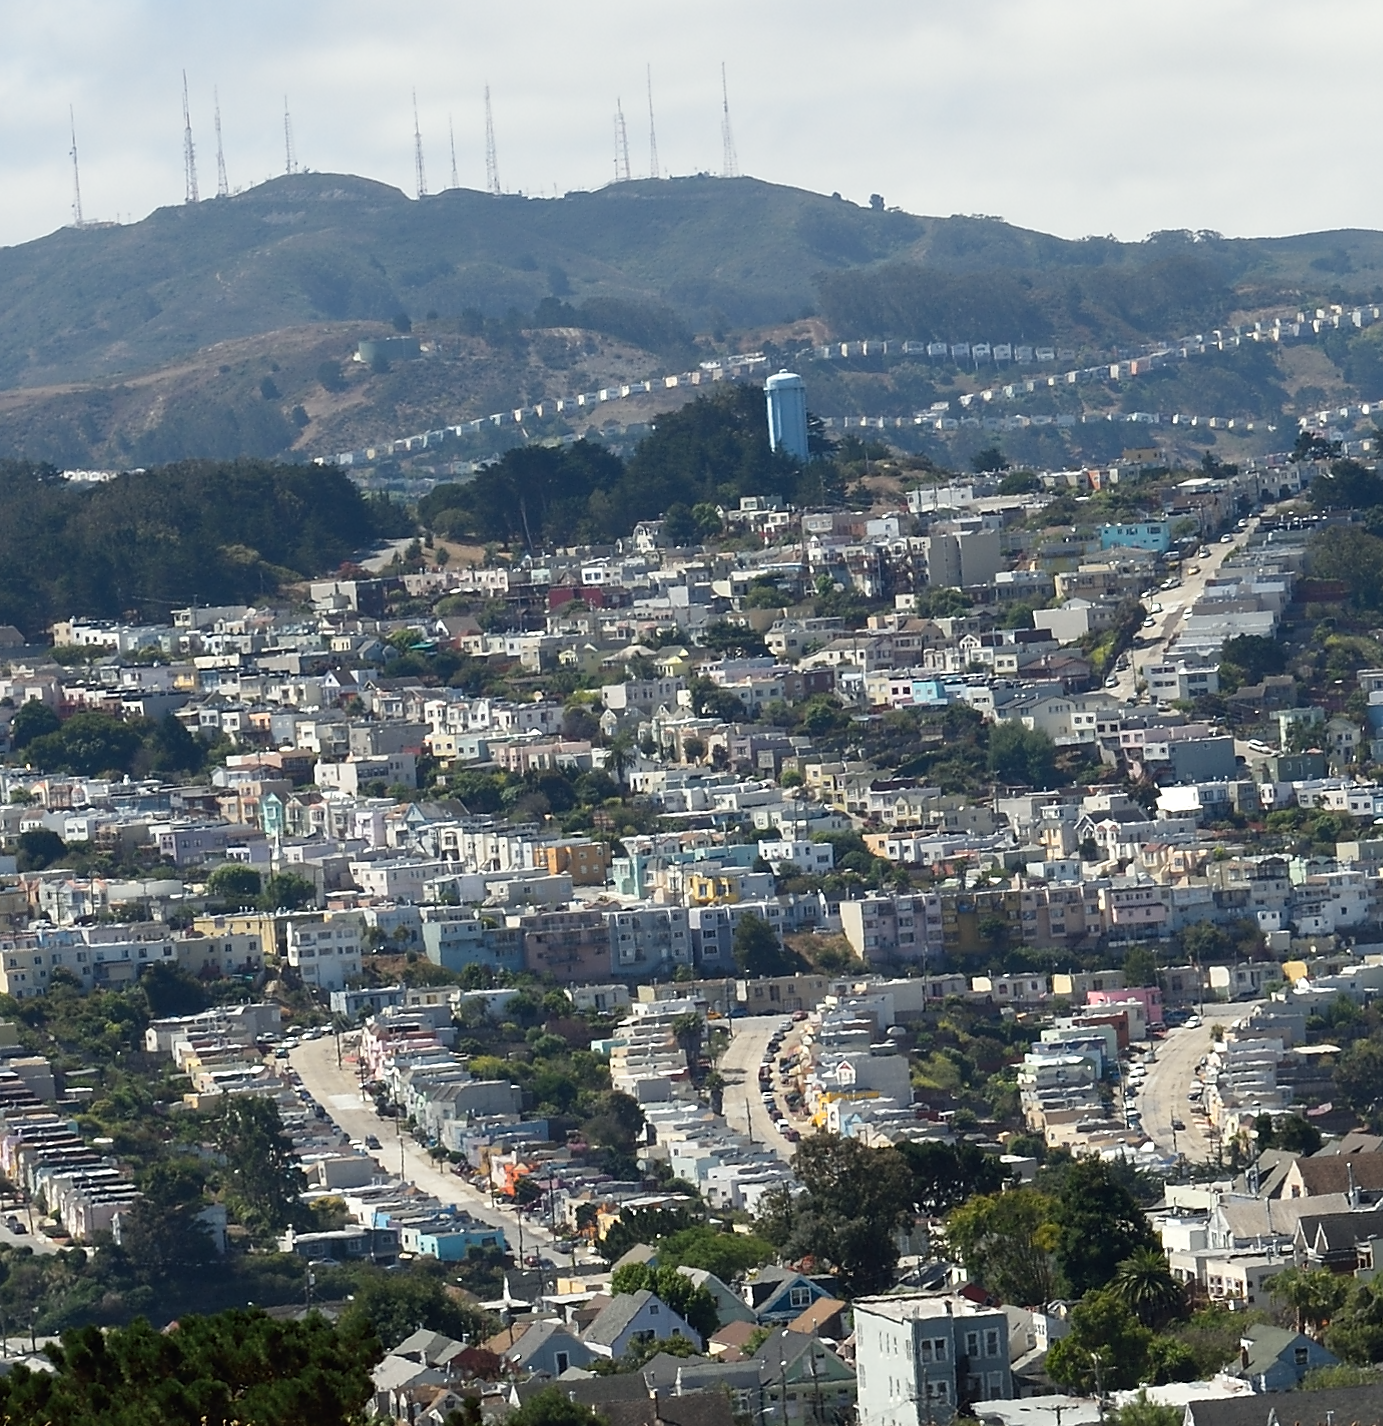 Facing the Excelsior from Bernal Heights Park, with the blue water tower on the horizon.